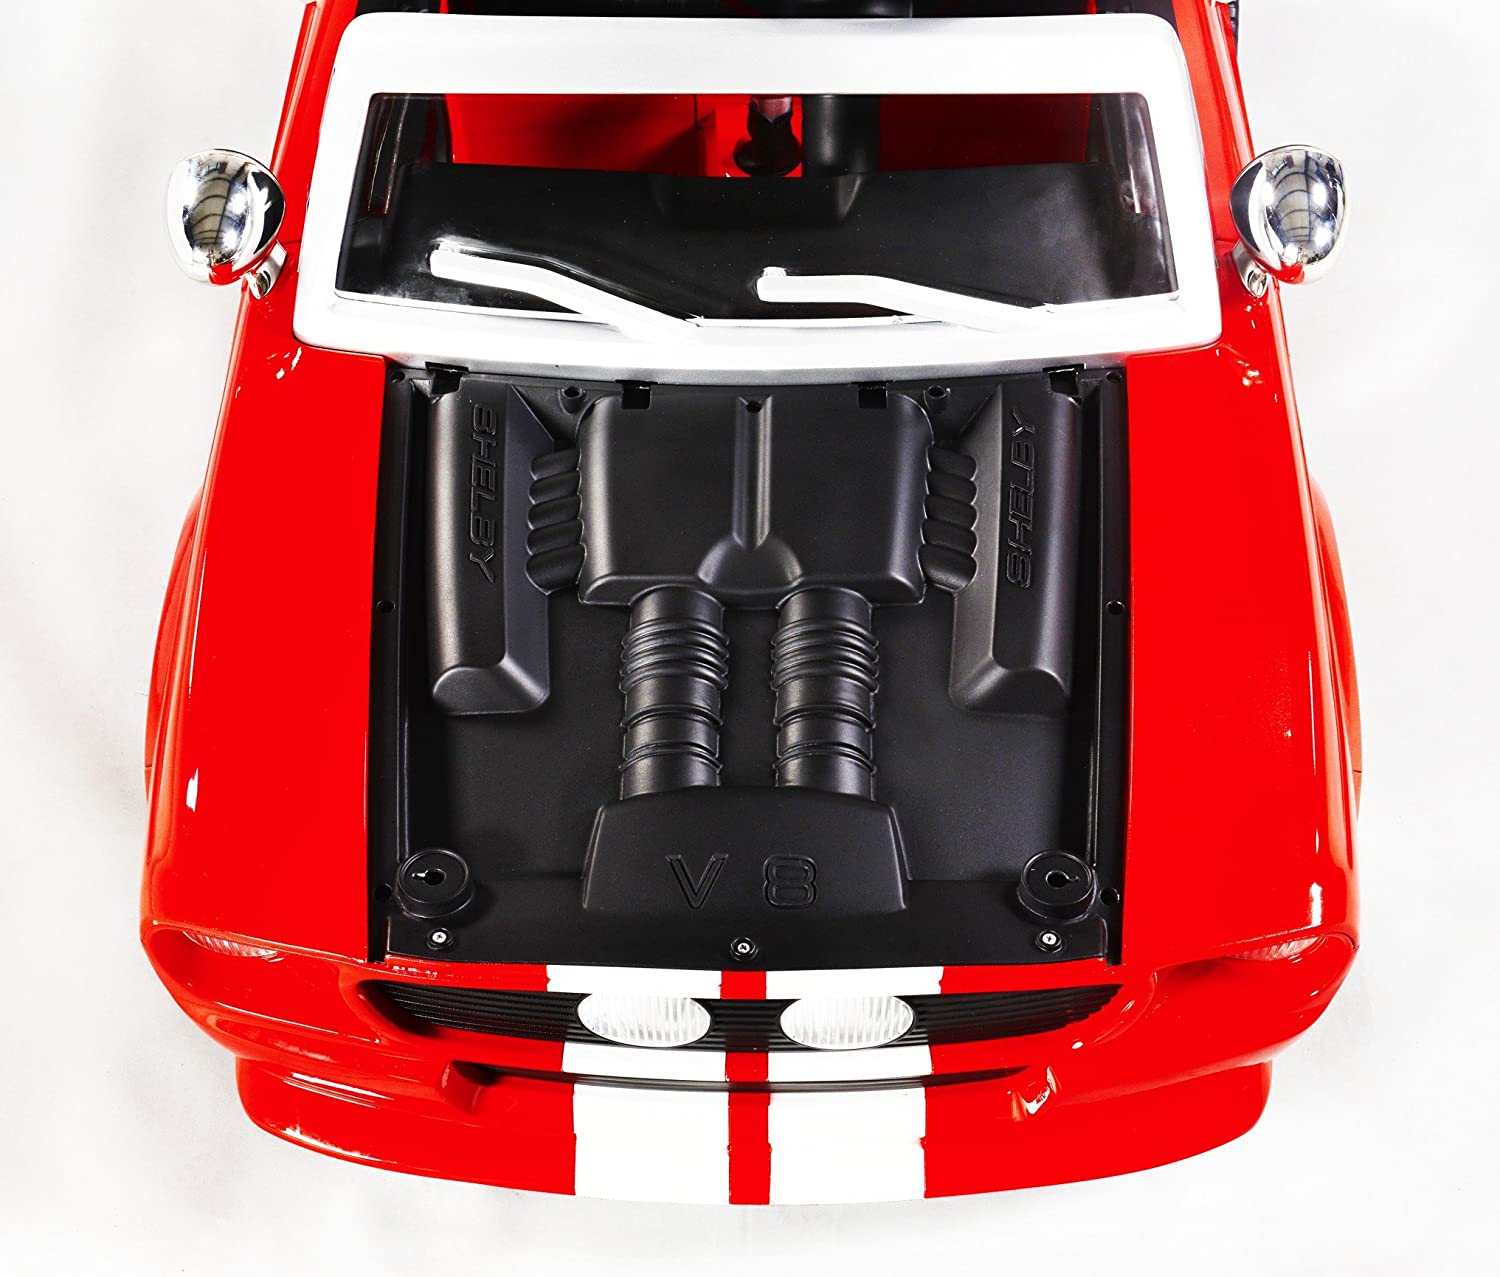 Amazon 12V 1967 Shelby Mustang GT 500 Two Seater Ride On With LEDs And Sounds Red Toys Games